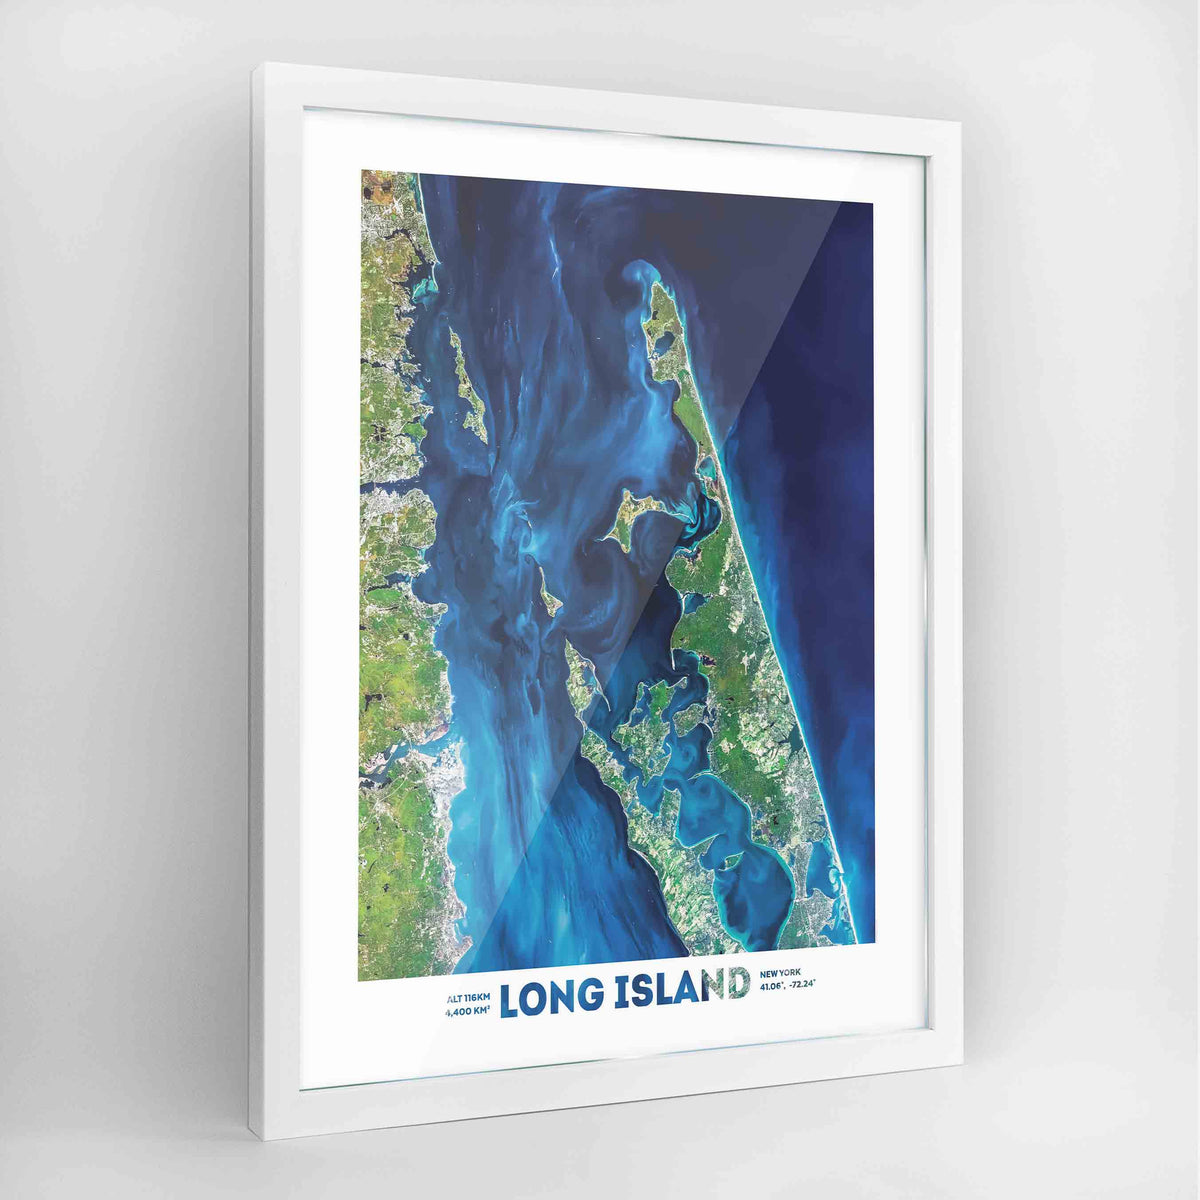 Long Island Earth Photography Art Print - Framed